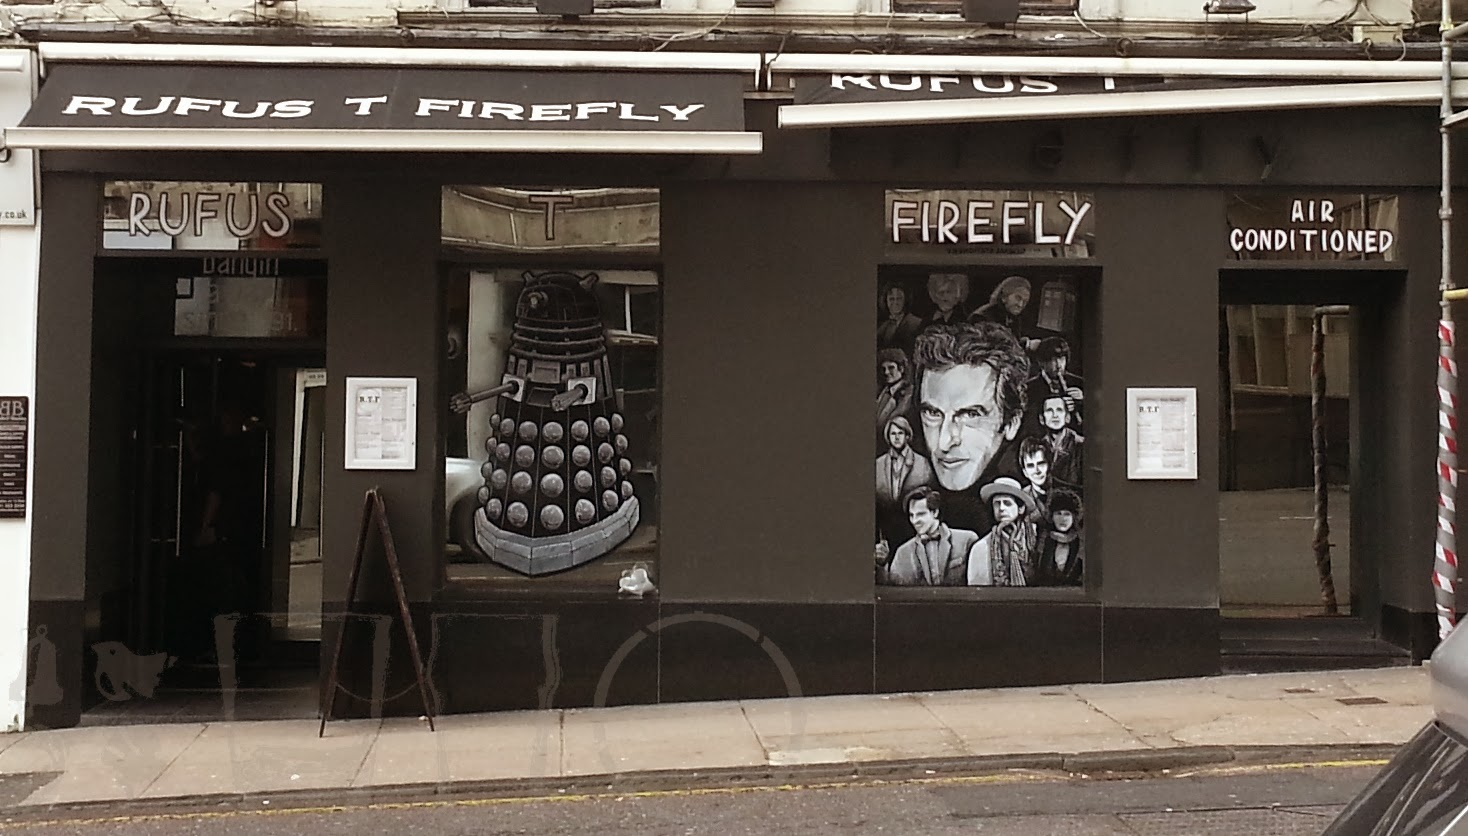 Dr Who, Rufus T Firefly, Glasgow